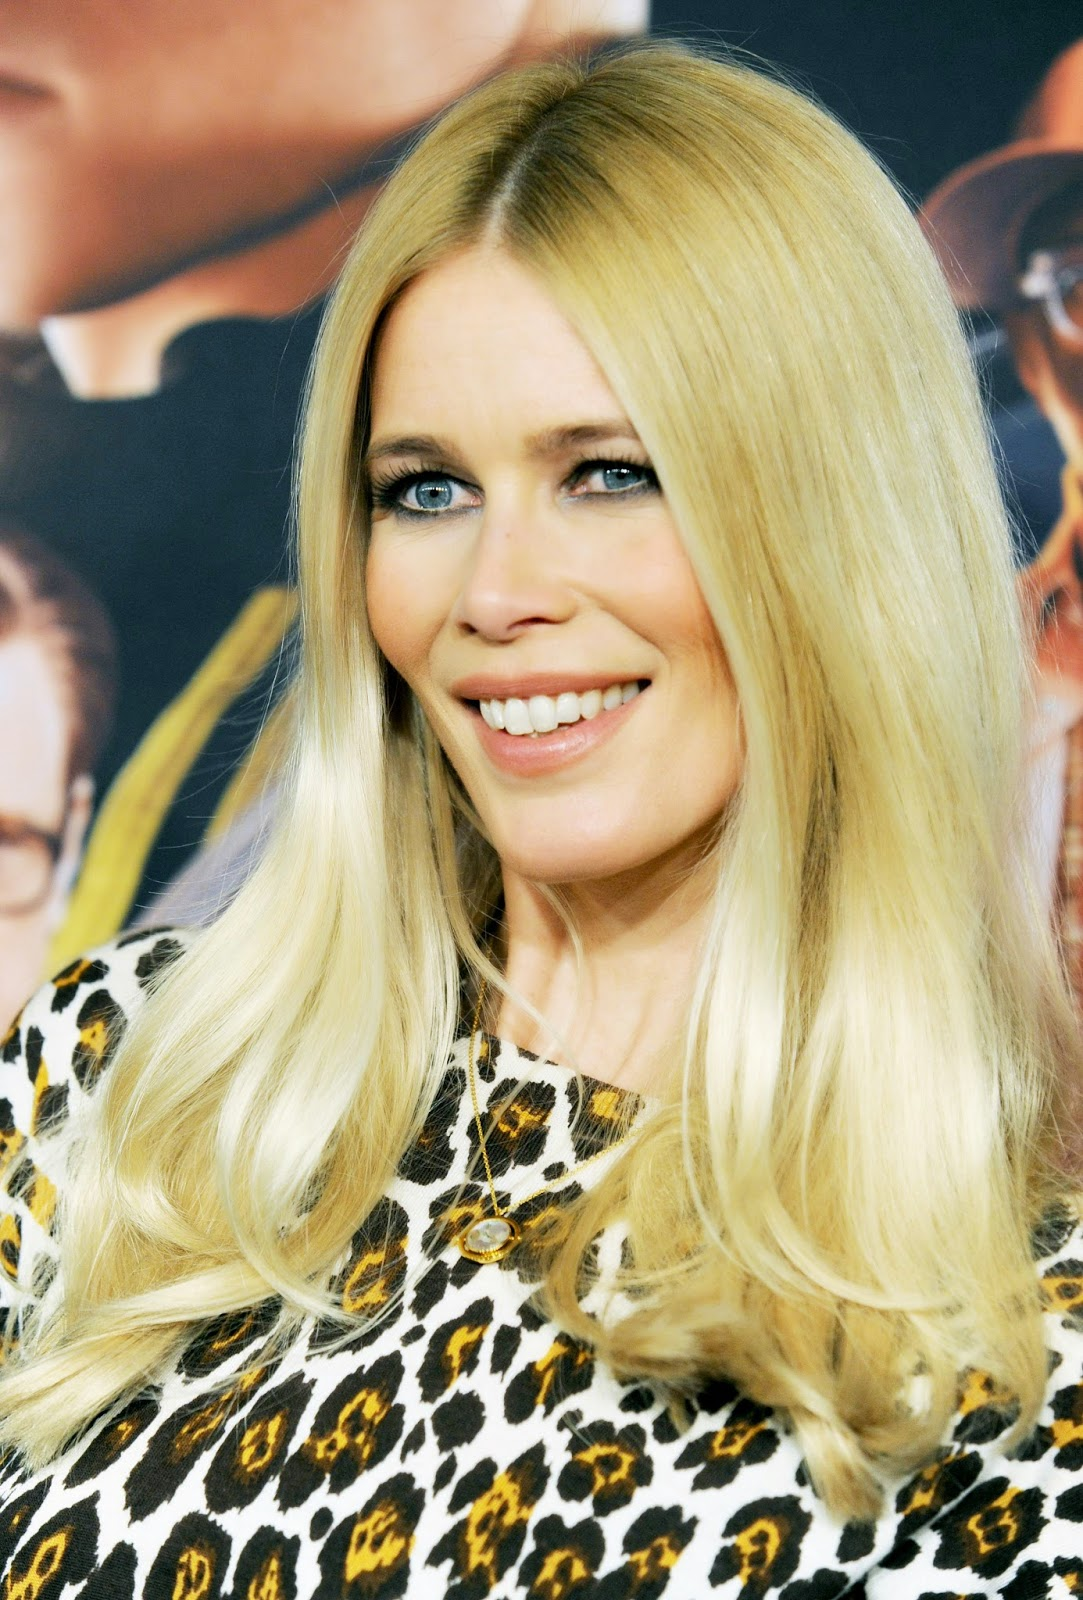 Claudia Schiffer Top Model